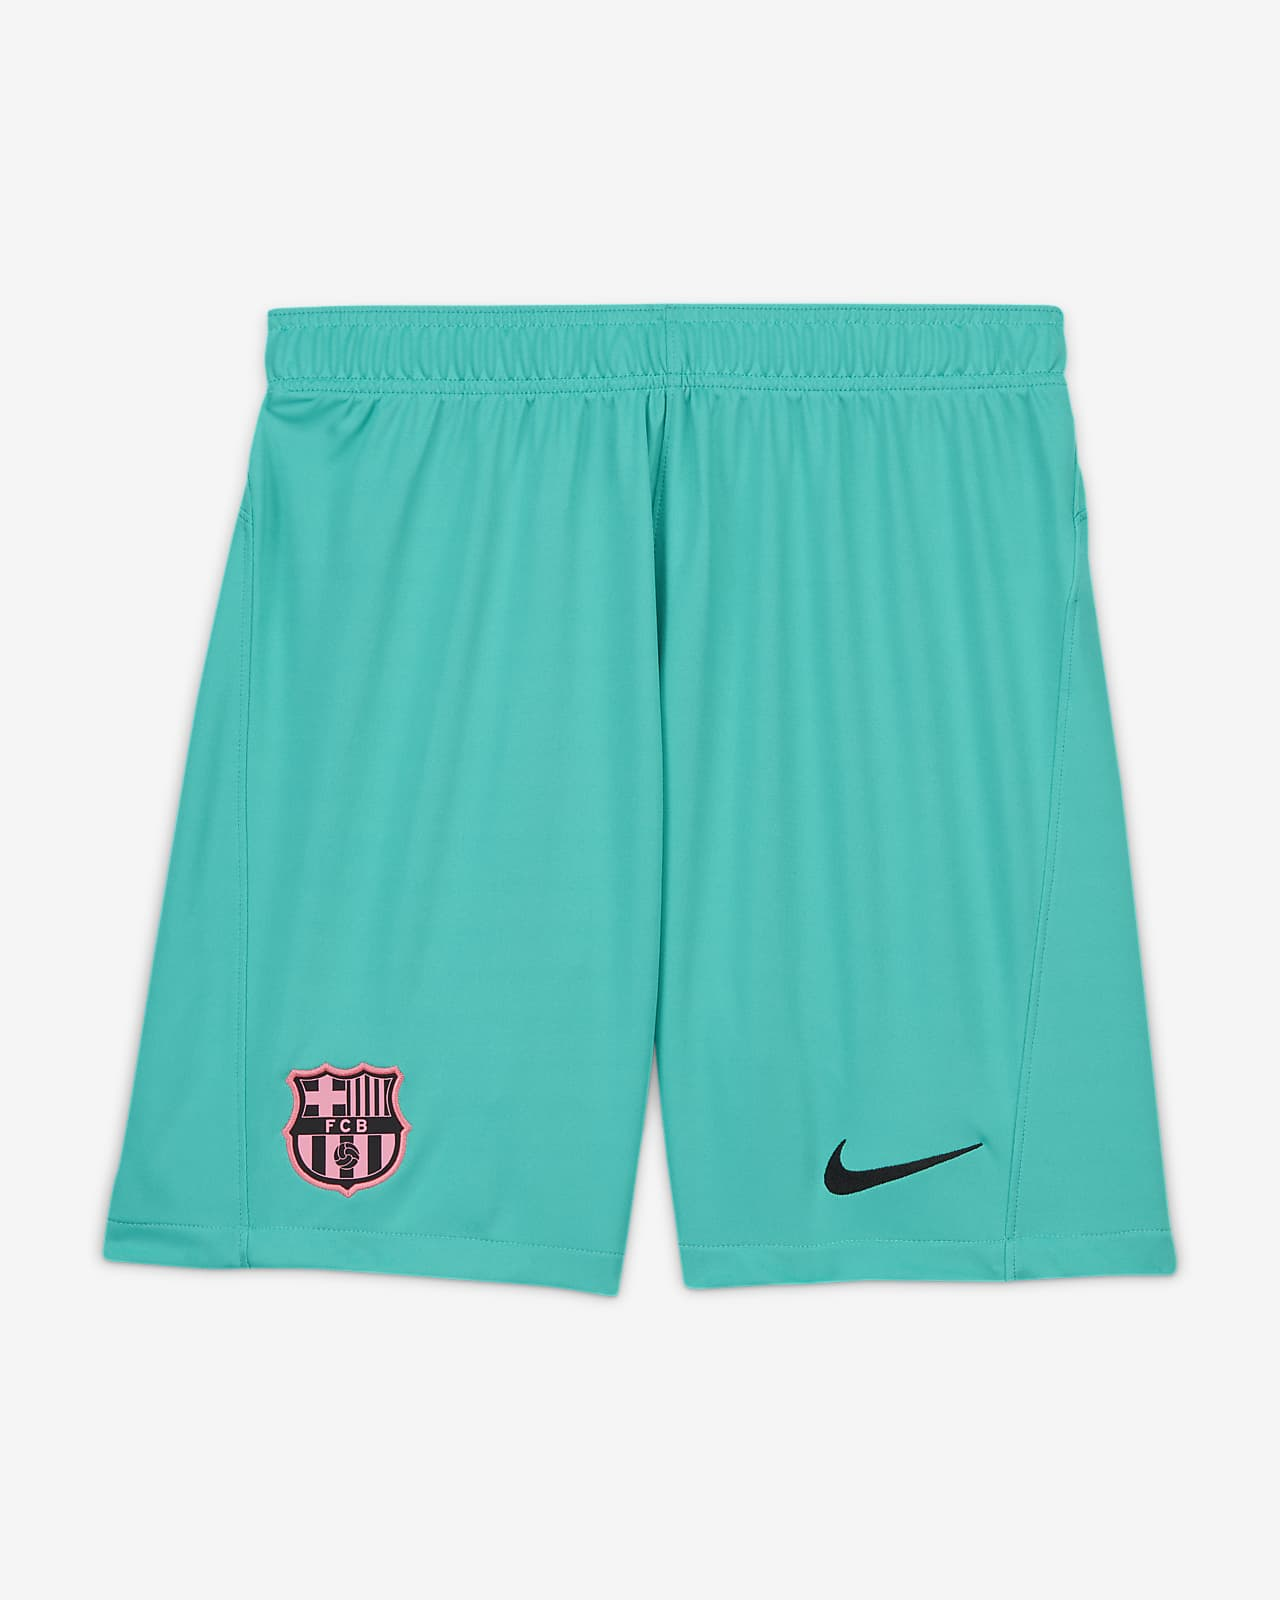 3e short de football FC Barcelona 2020/21 Stadium pour Homme